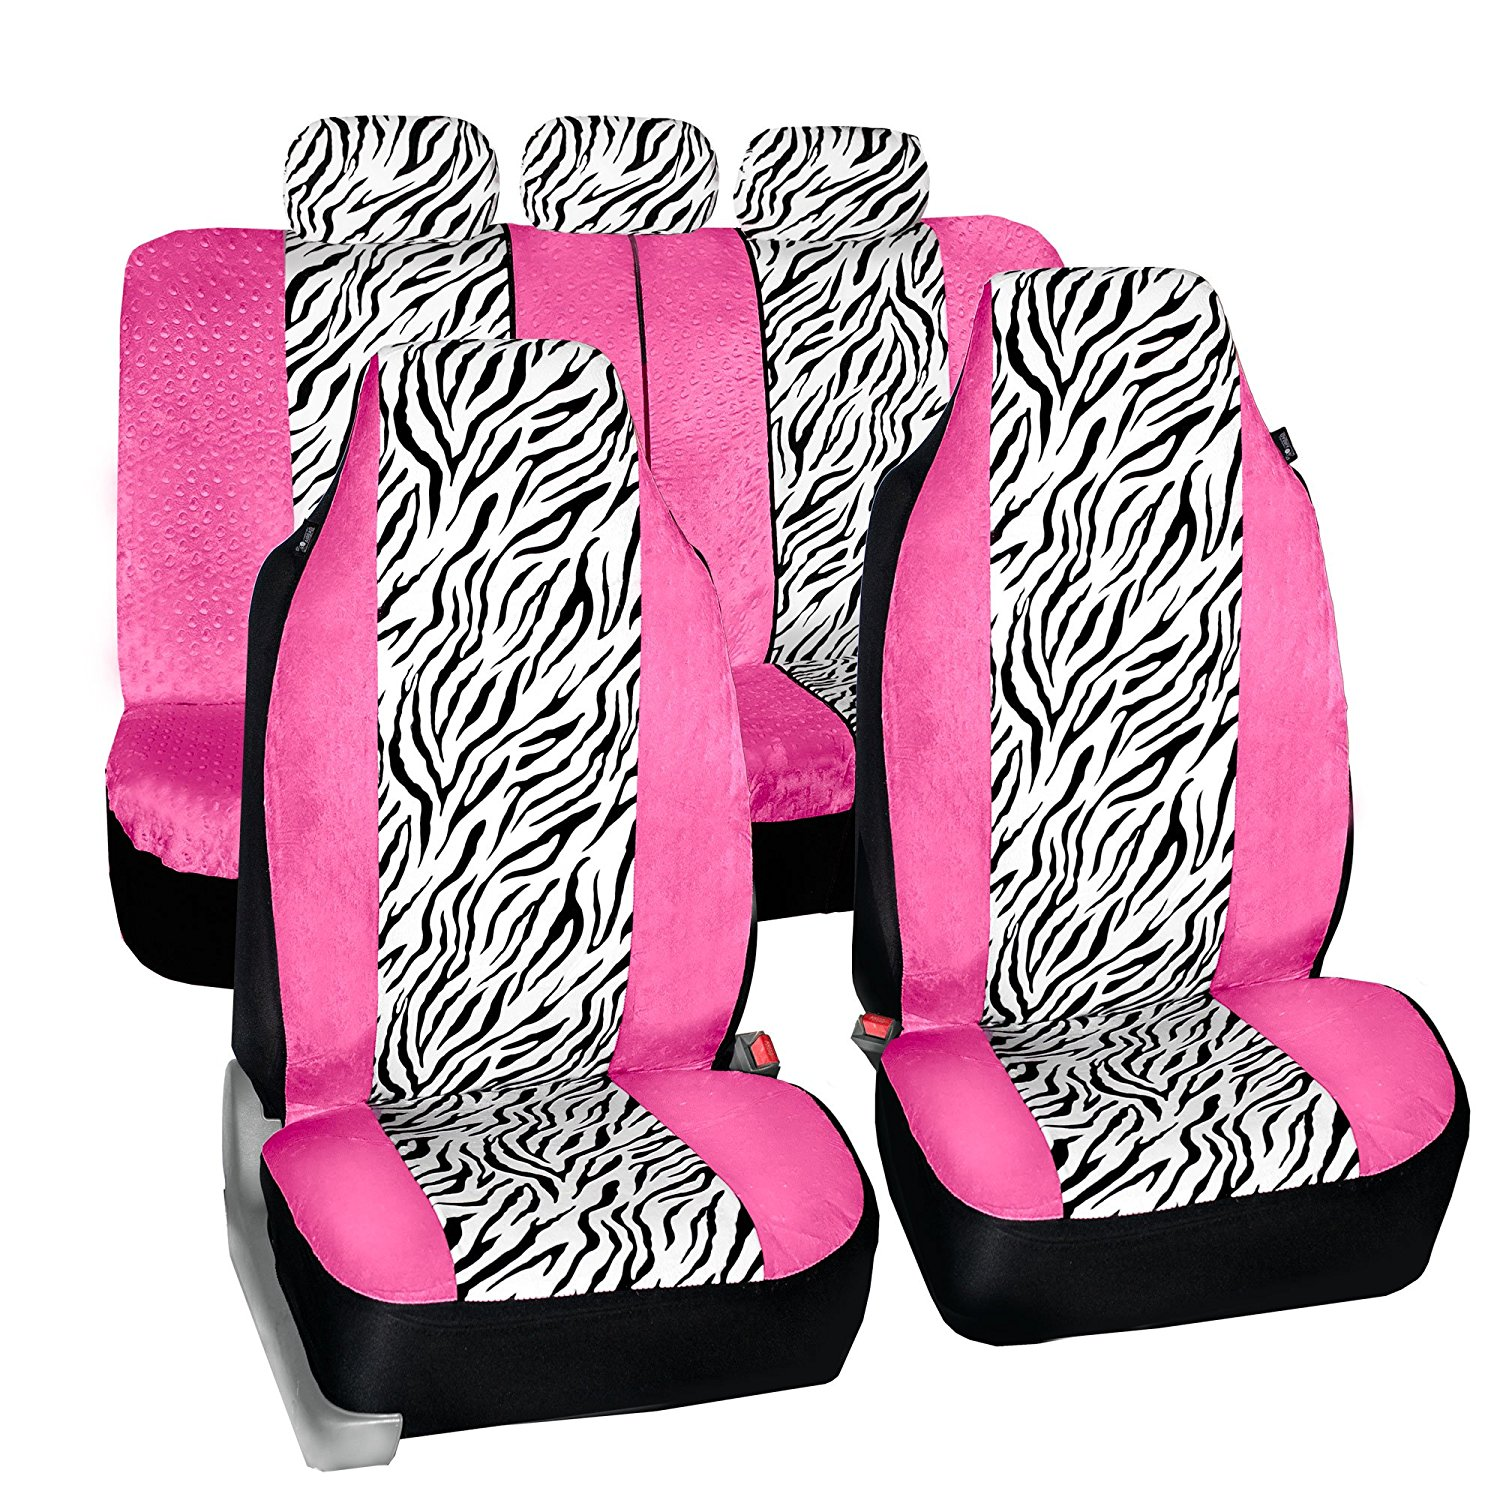 FH FB121115 Zebra Prints Car Seat Covers